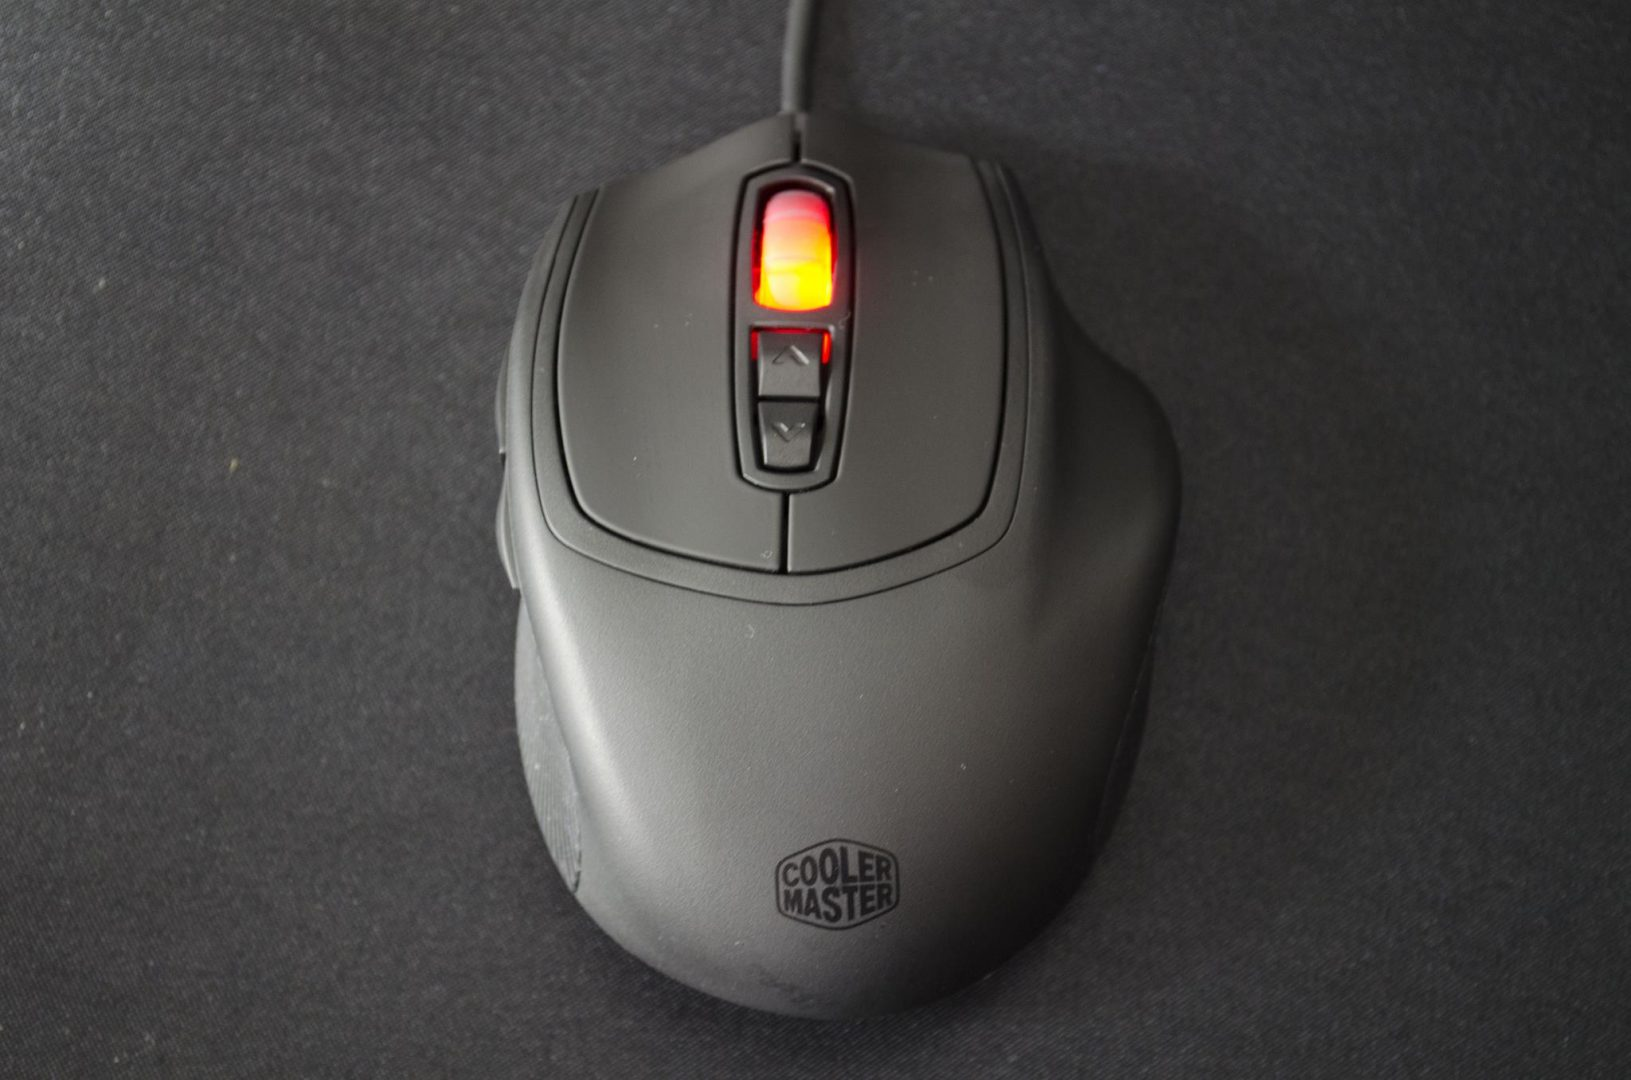 CM Storm Xornet II Gaming Mouse Review_8